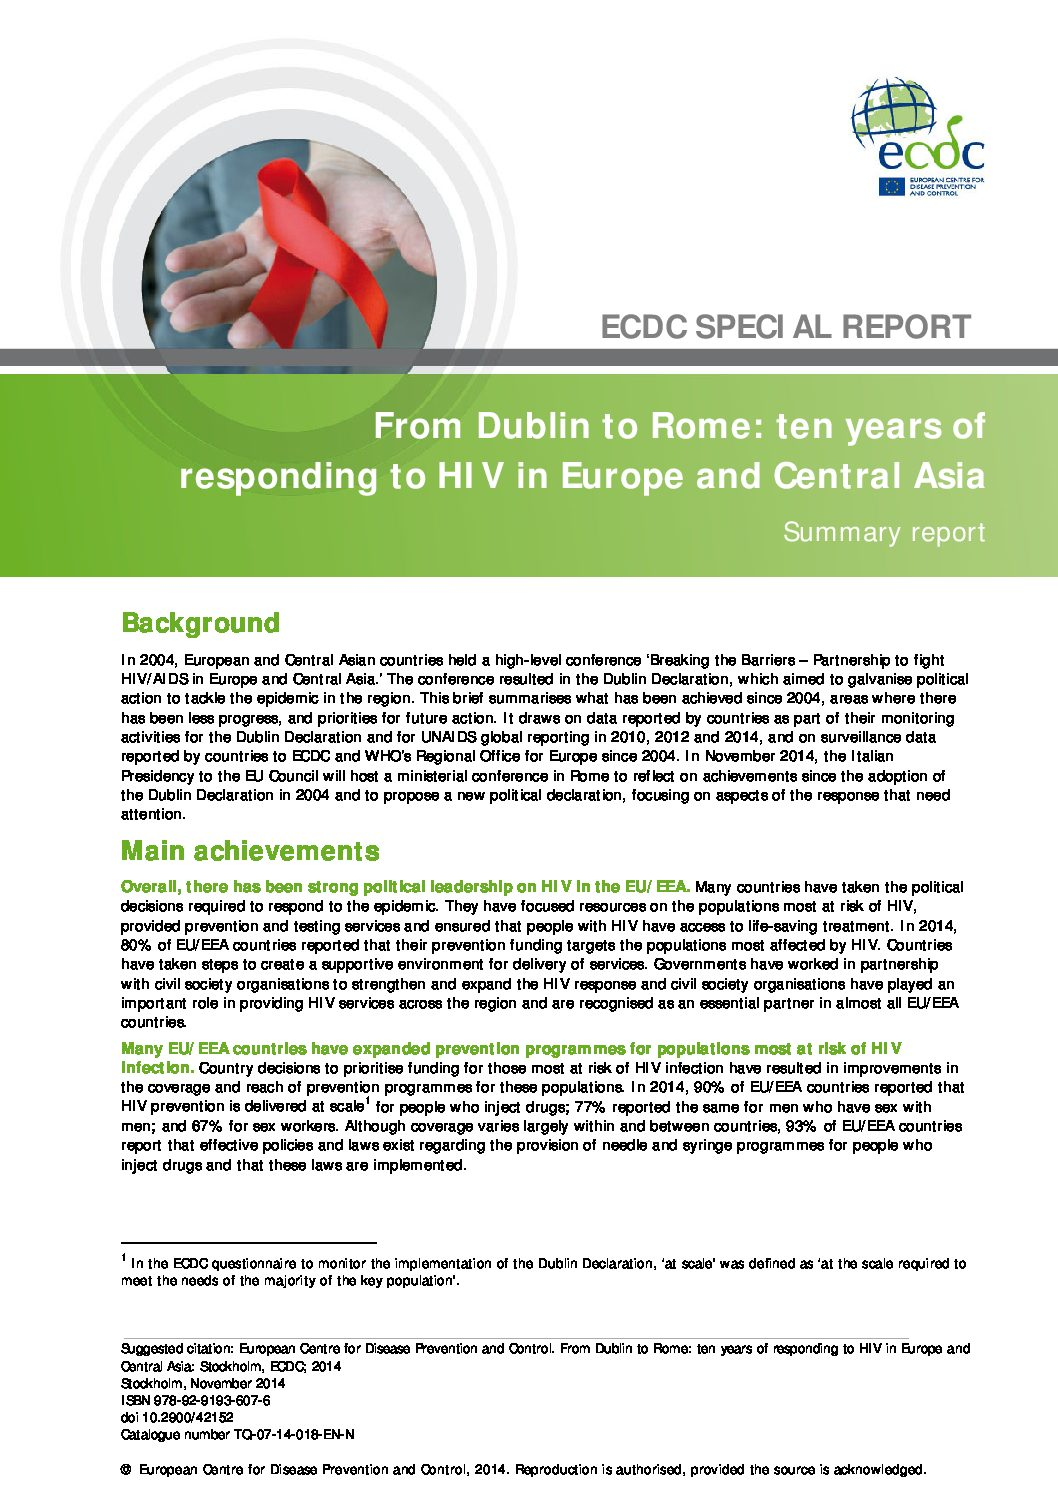 From Dublin to Rome: ten years of responding to HIV in Europe and Central Asia. Summary report